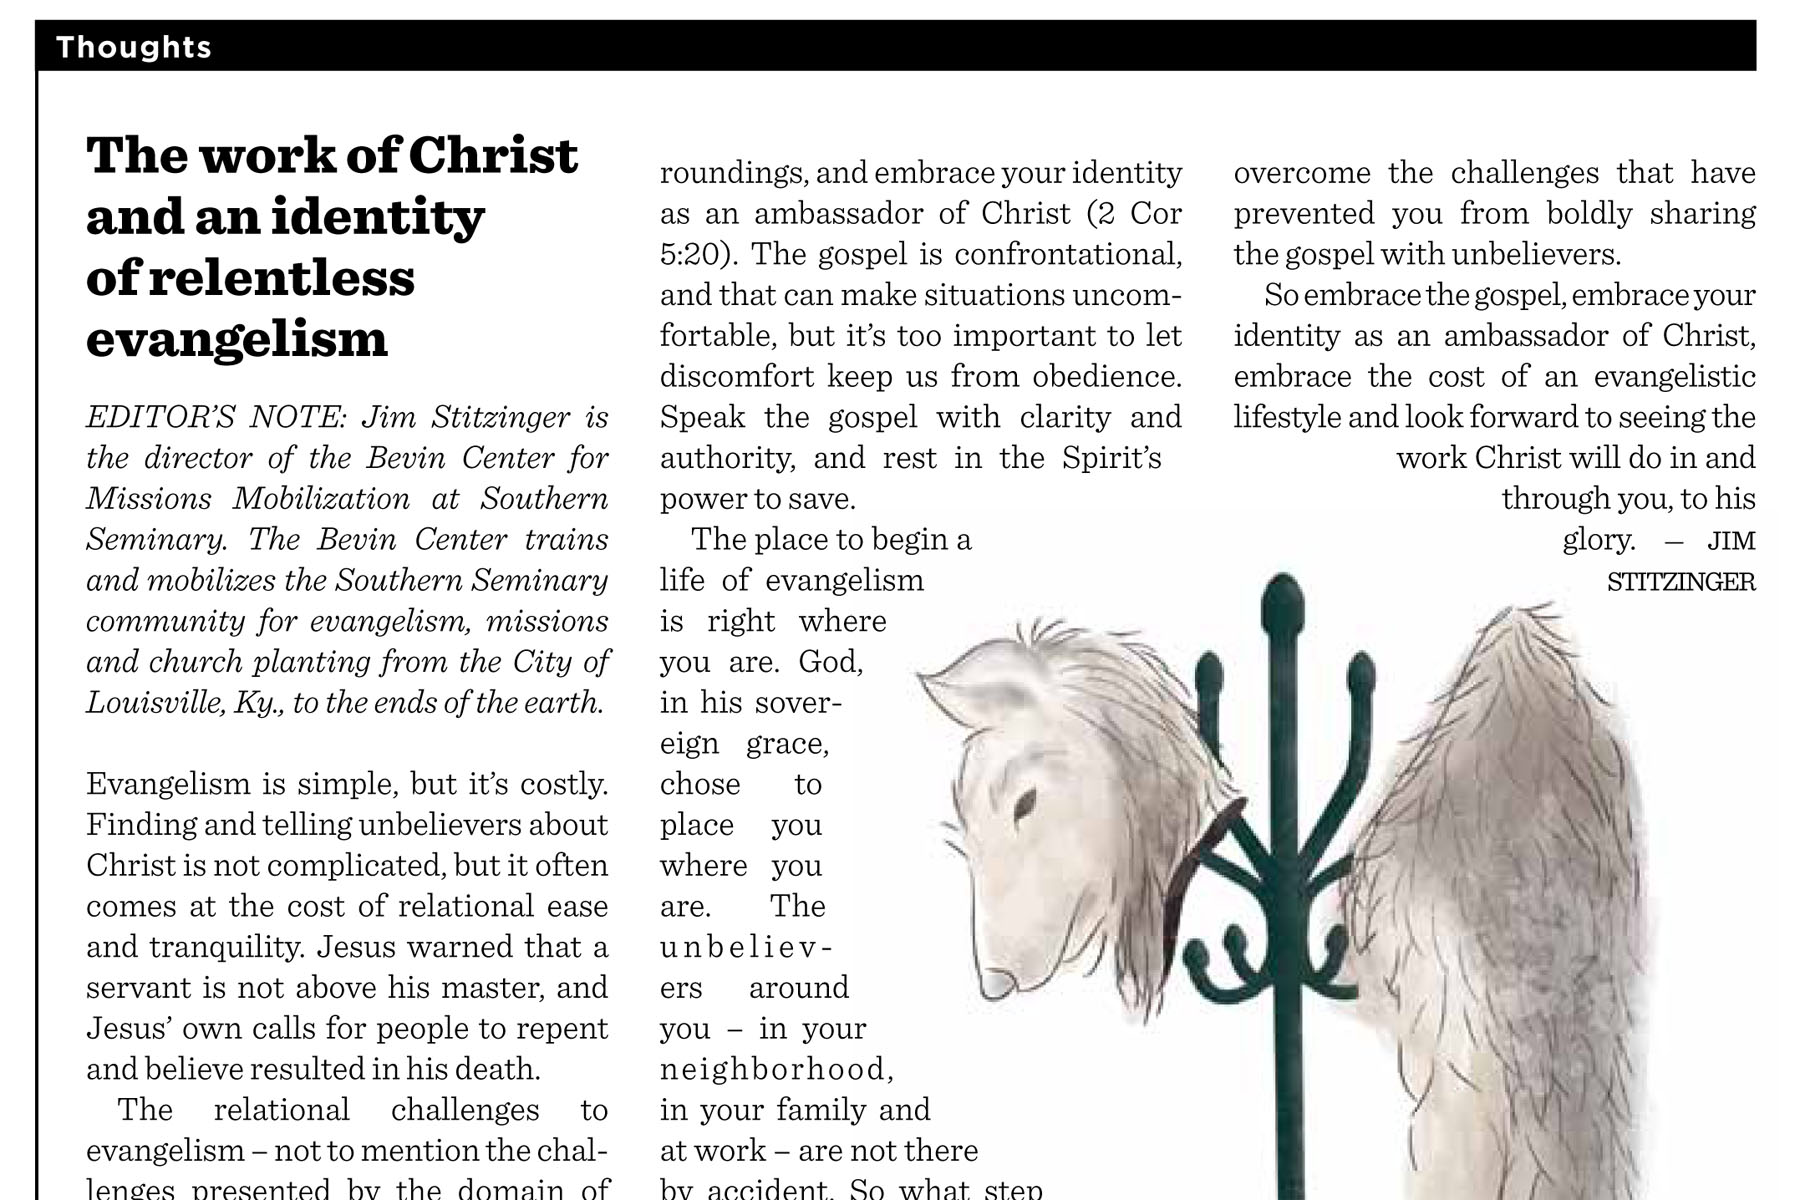 The Work of Christ and an Identity 